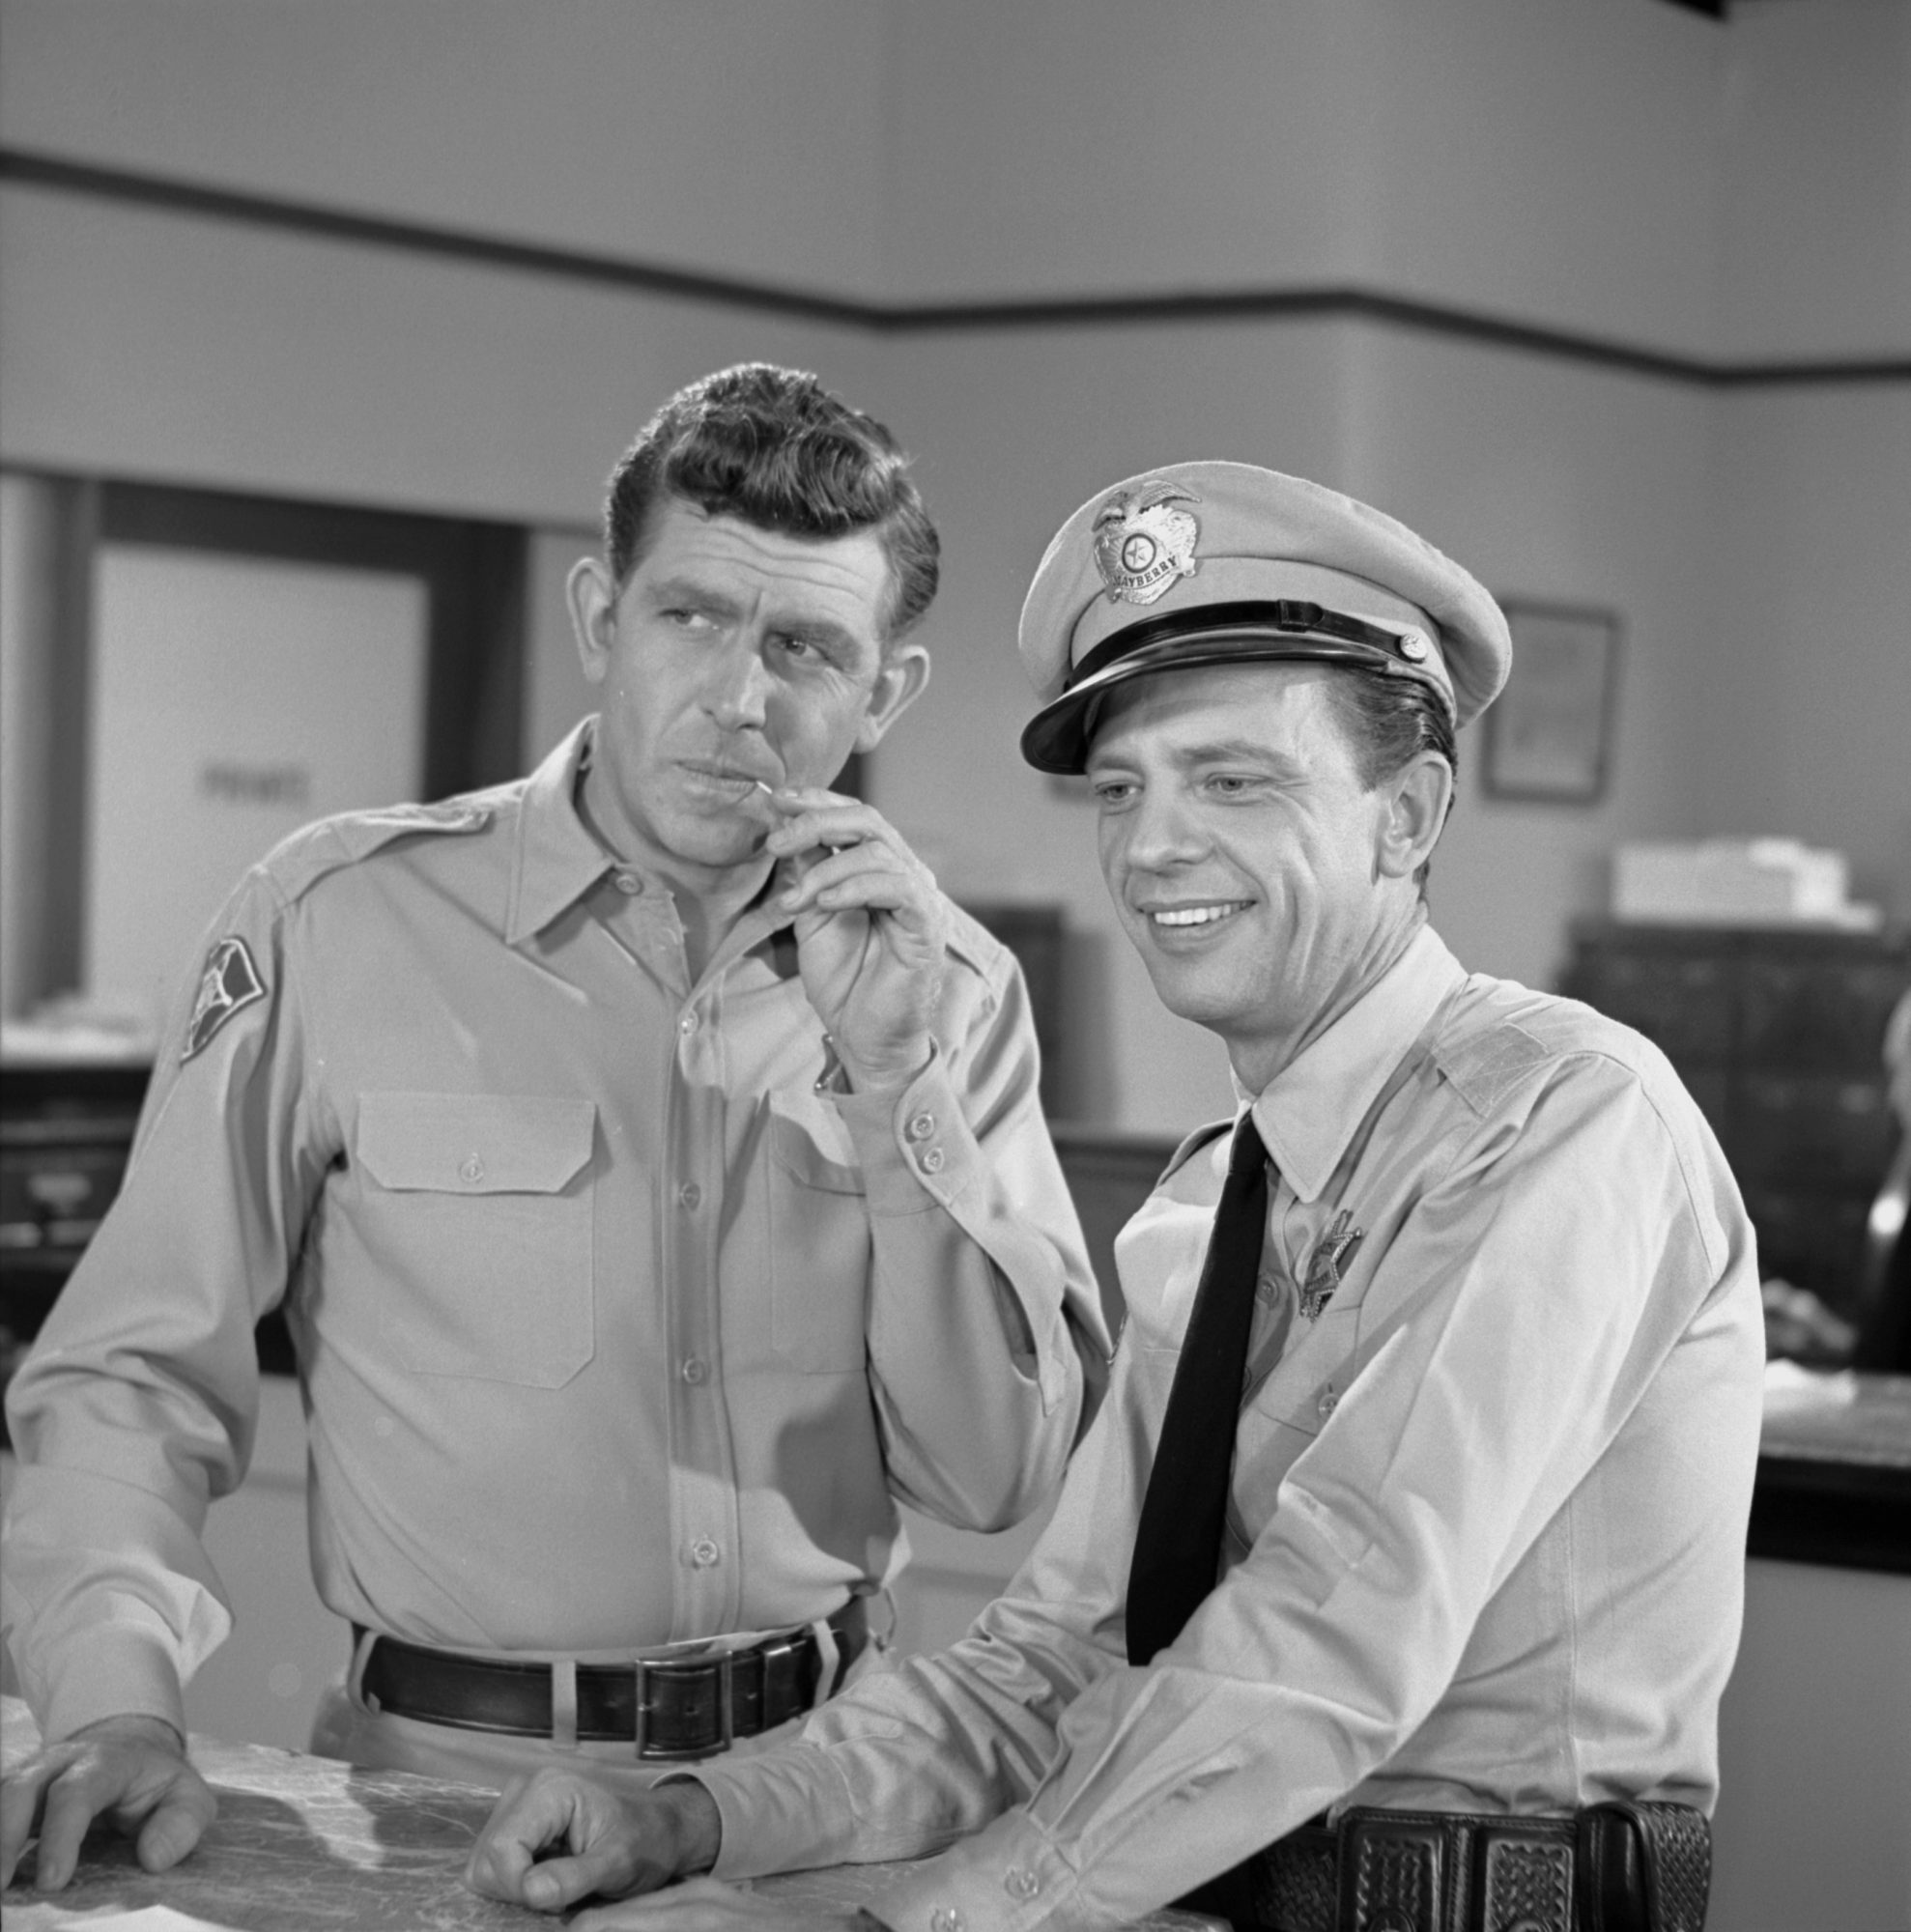 5 Facts You May Not Know About The Andy Griffith Show